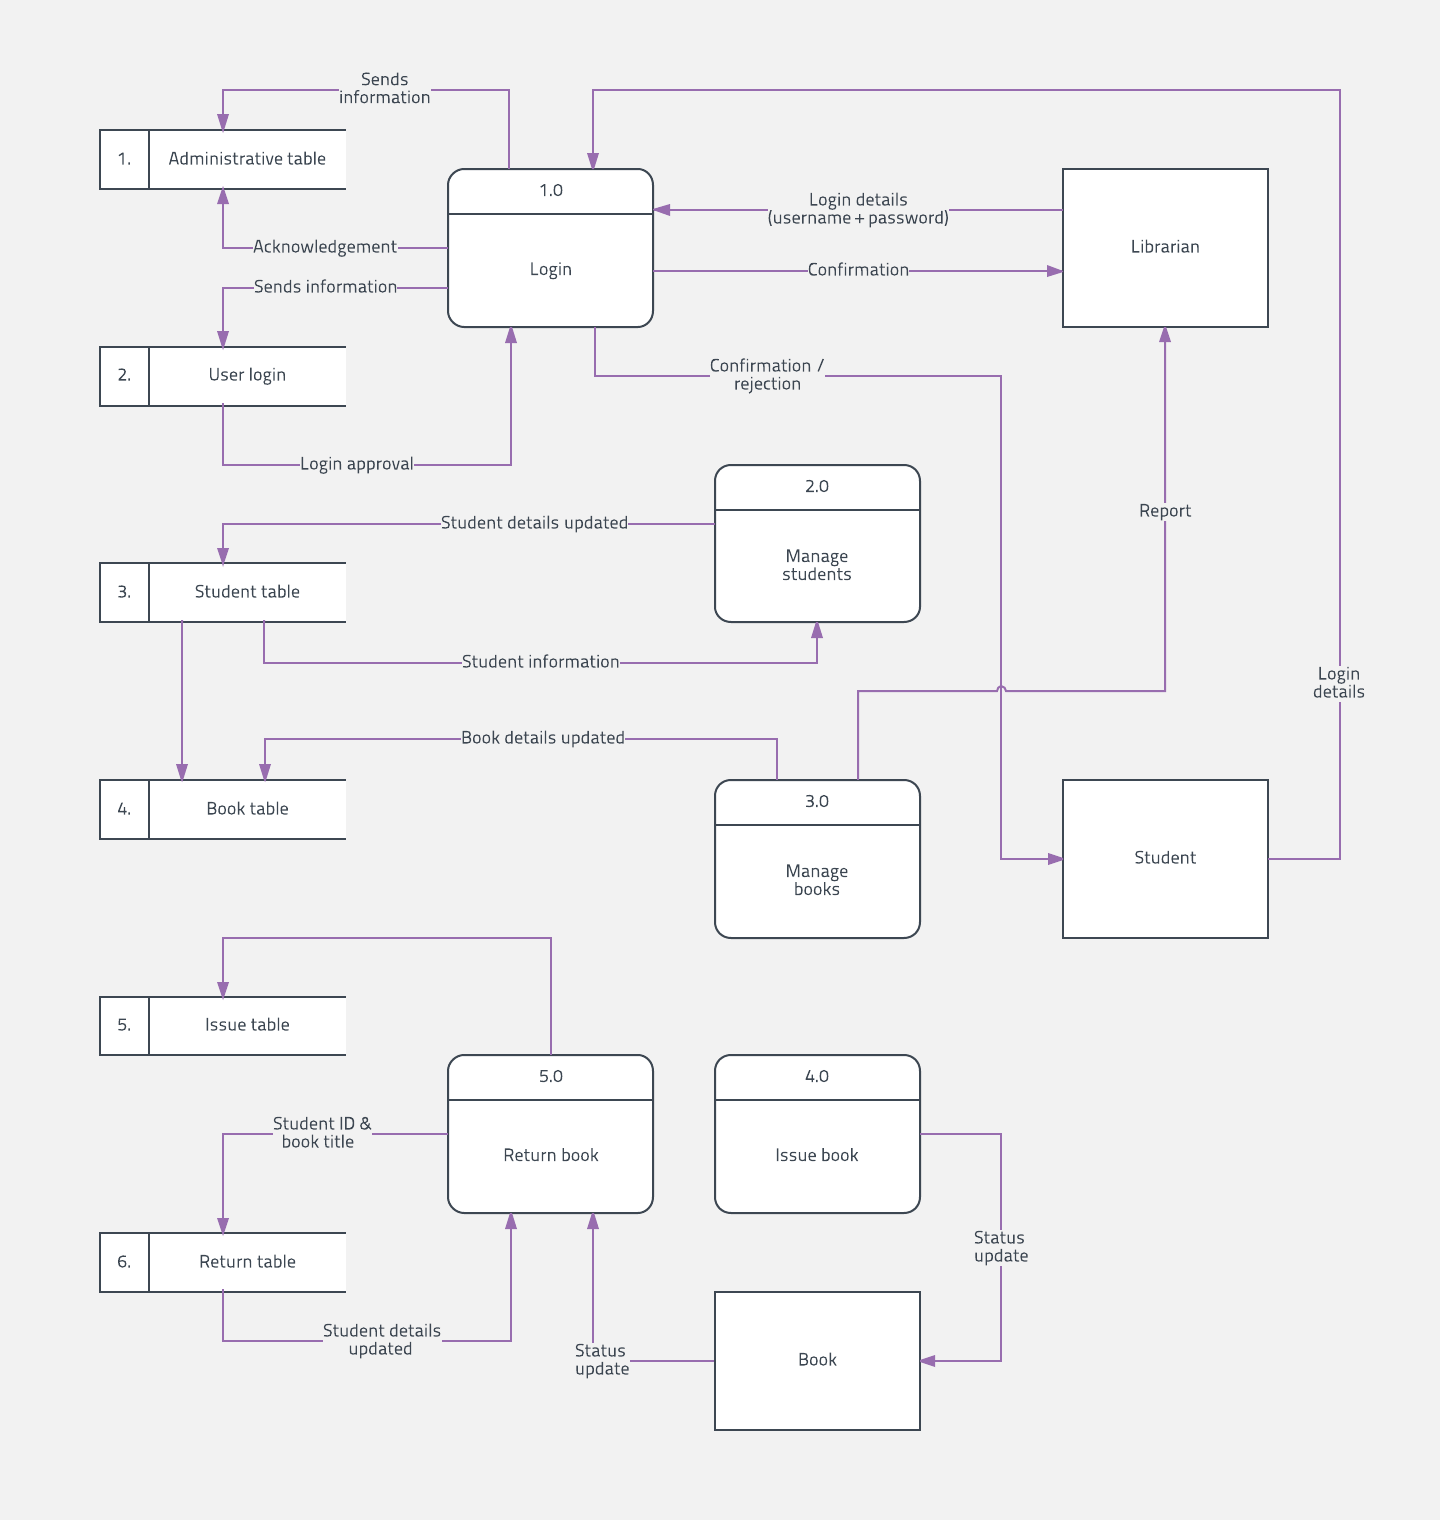 Data Flow Diagram Symbols Types And Tips Lucidchart Wiring Needed System Check Control Box Owners By Looking At Your Final Other Parties Should Be Able To Understand The Way Functions Before Presenting With